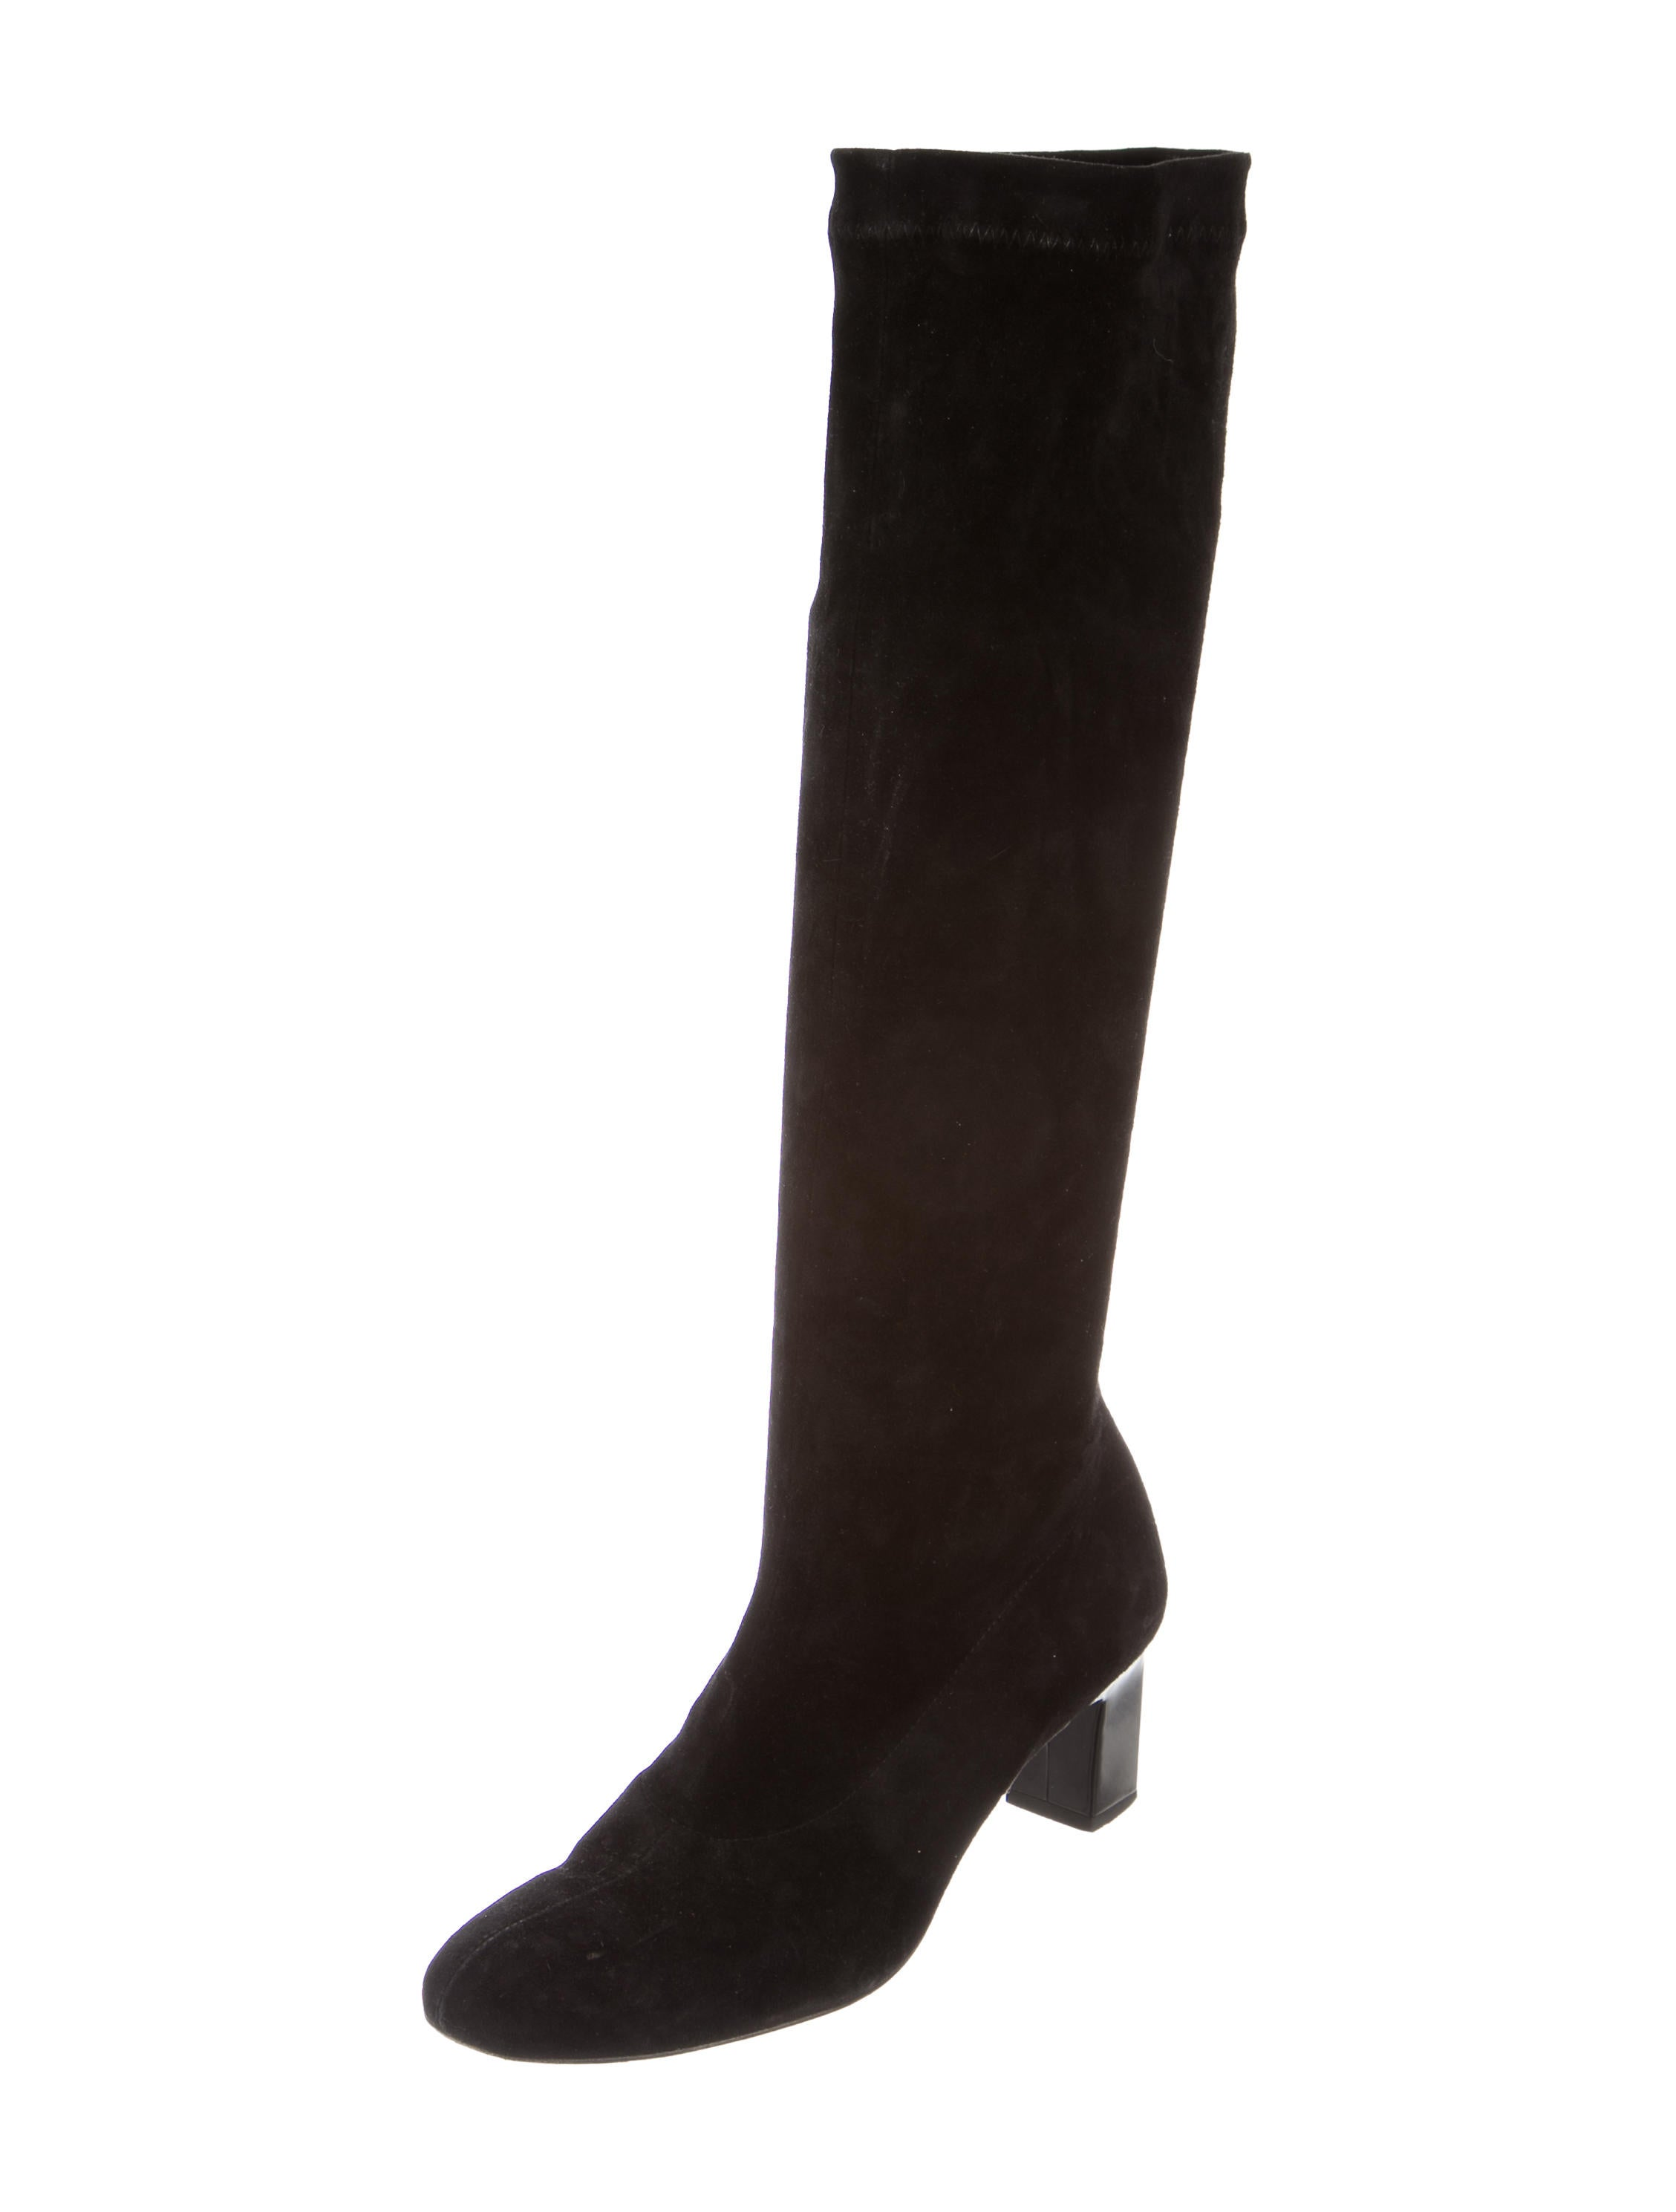 robert clergerie suede knee high boots shoes rog23643